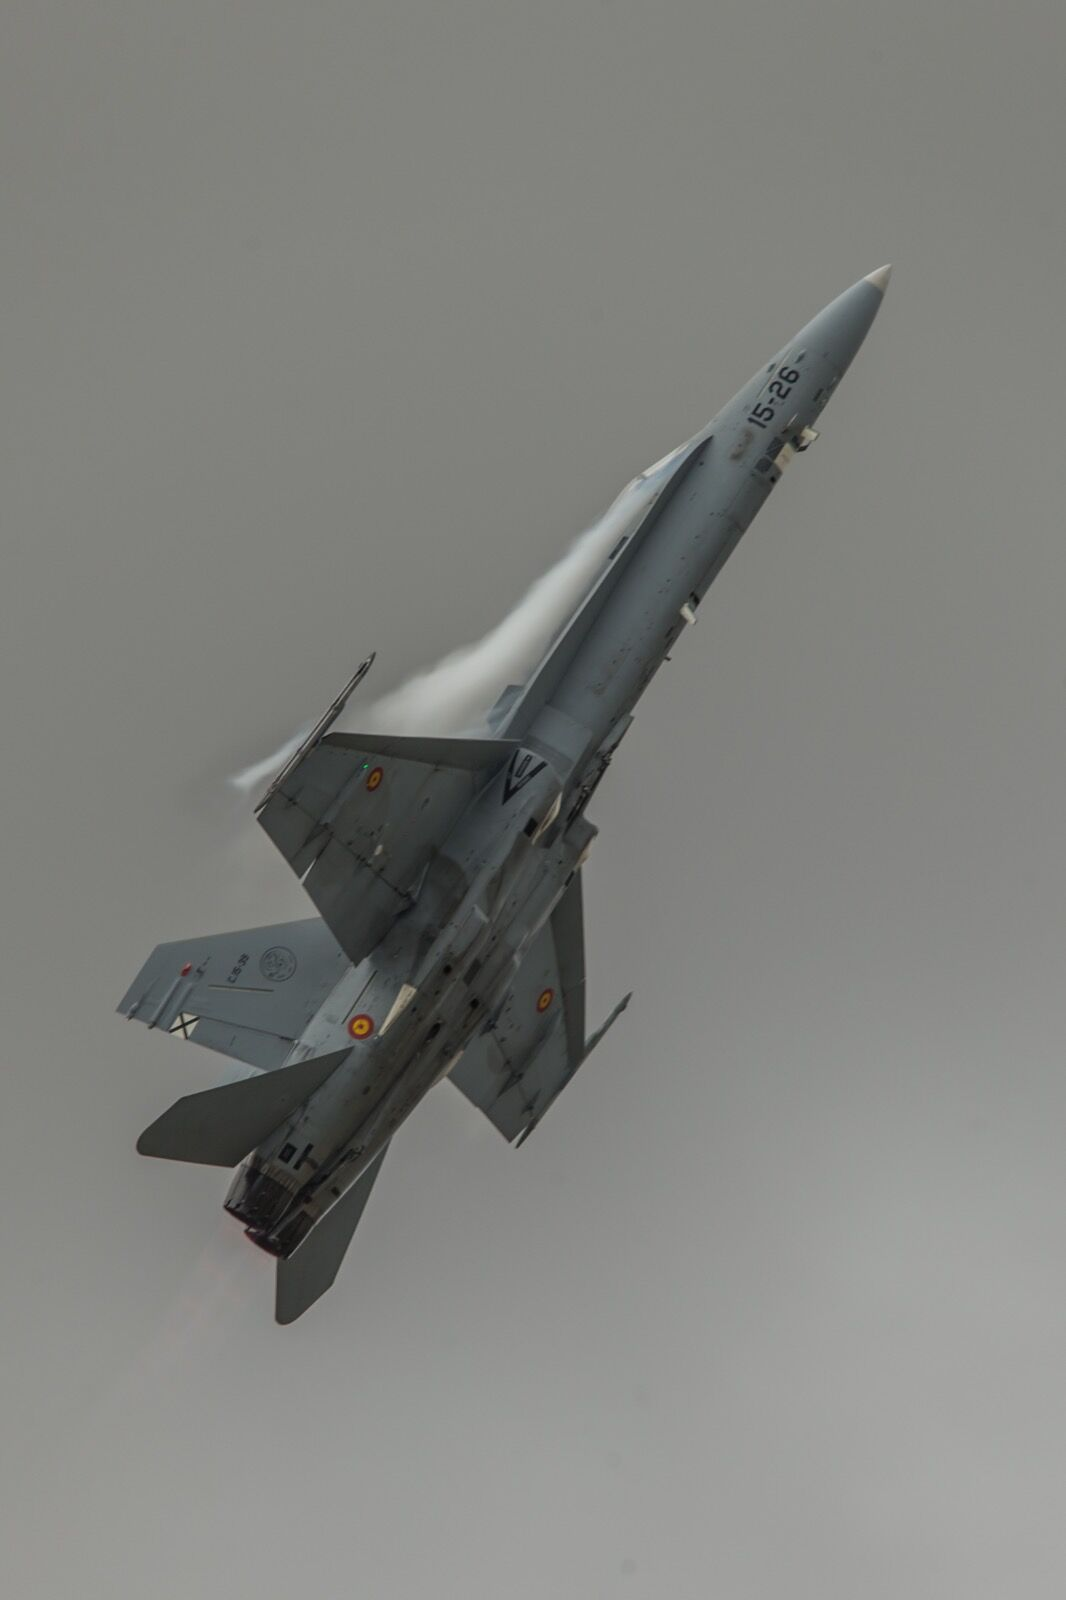 Spanish FA-18 Hornet pulls up sharply with vapour off the wings